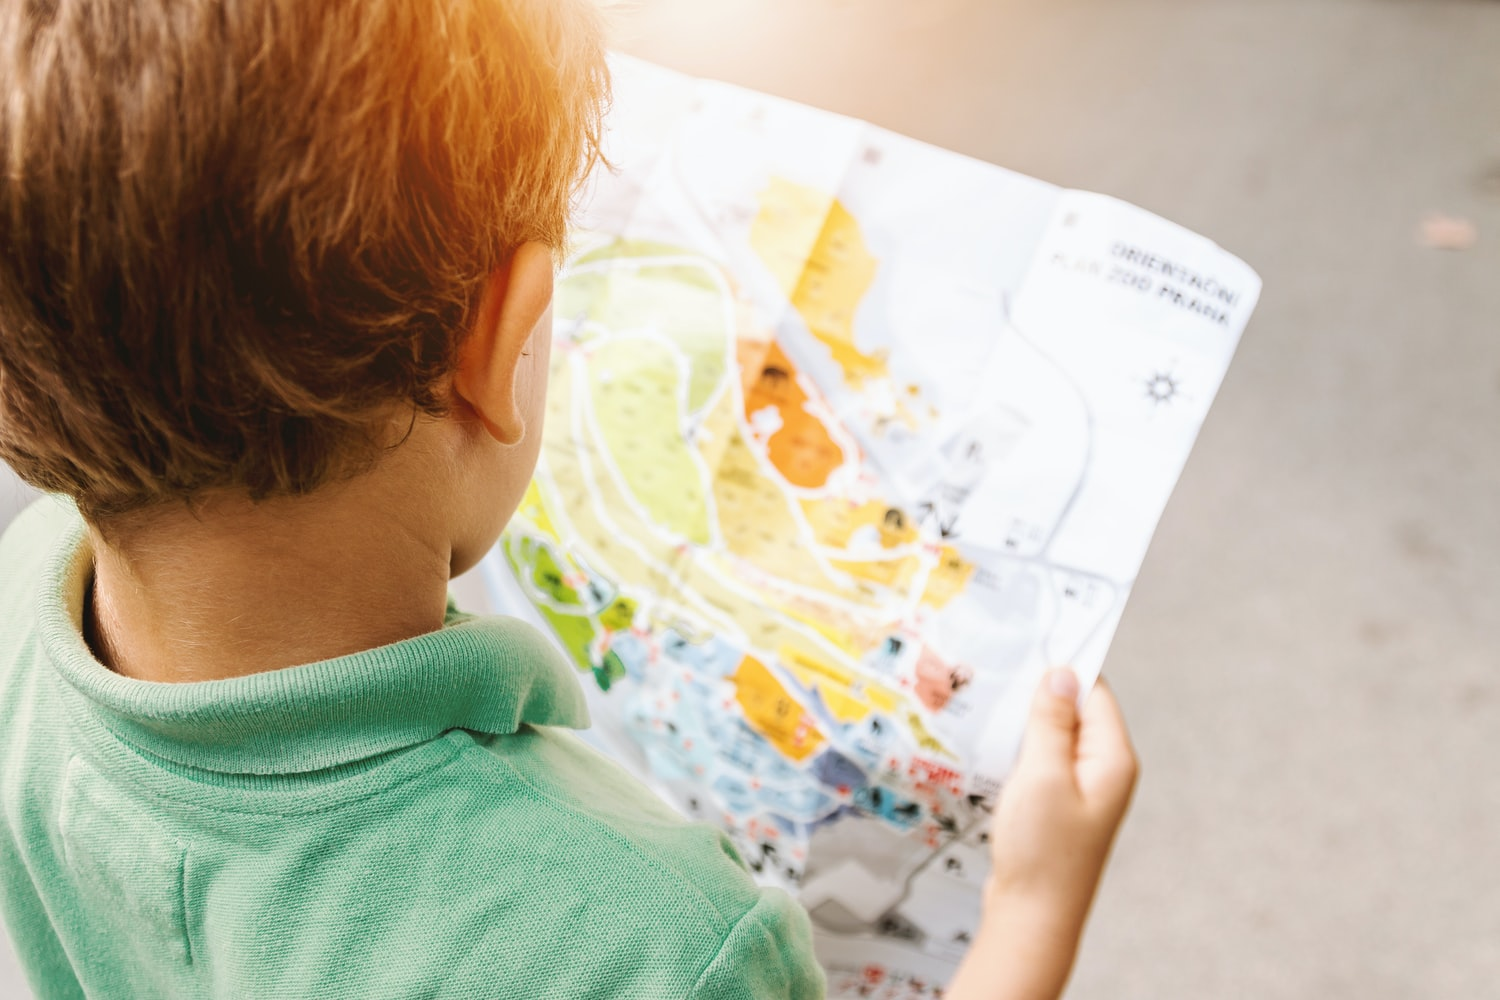 Little boy looking at a map.